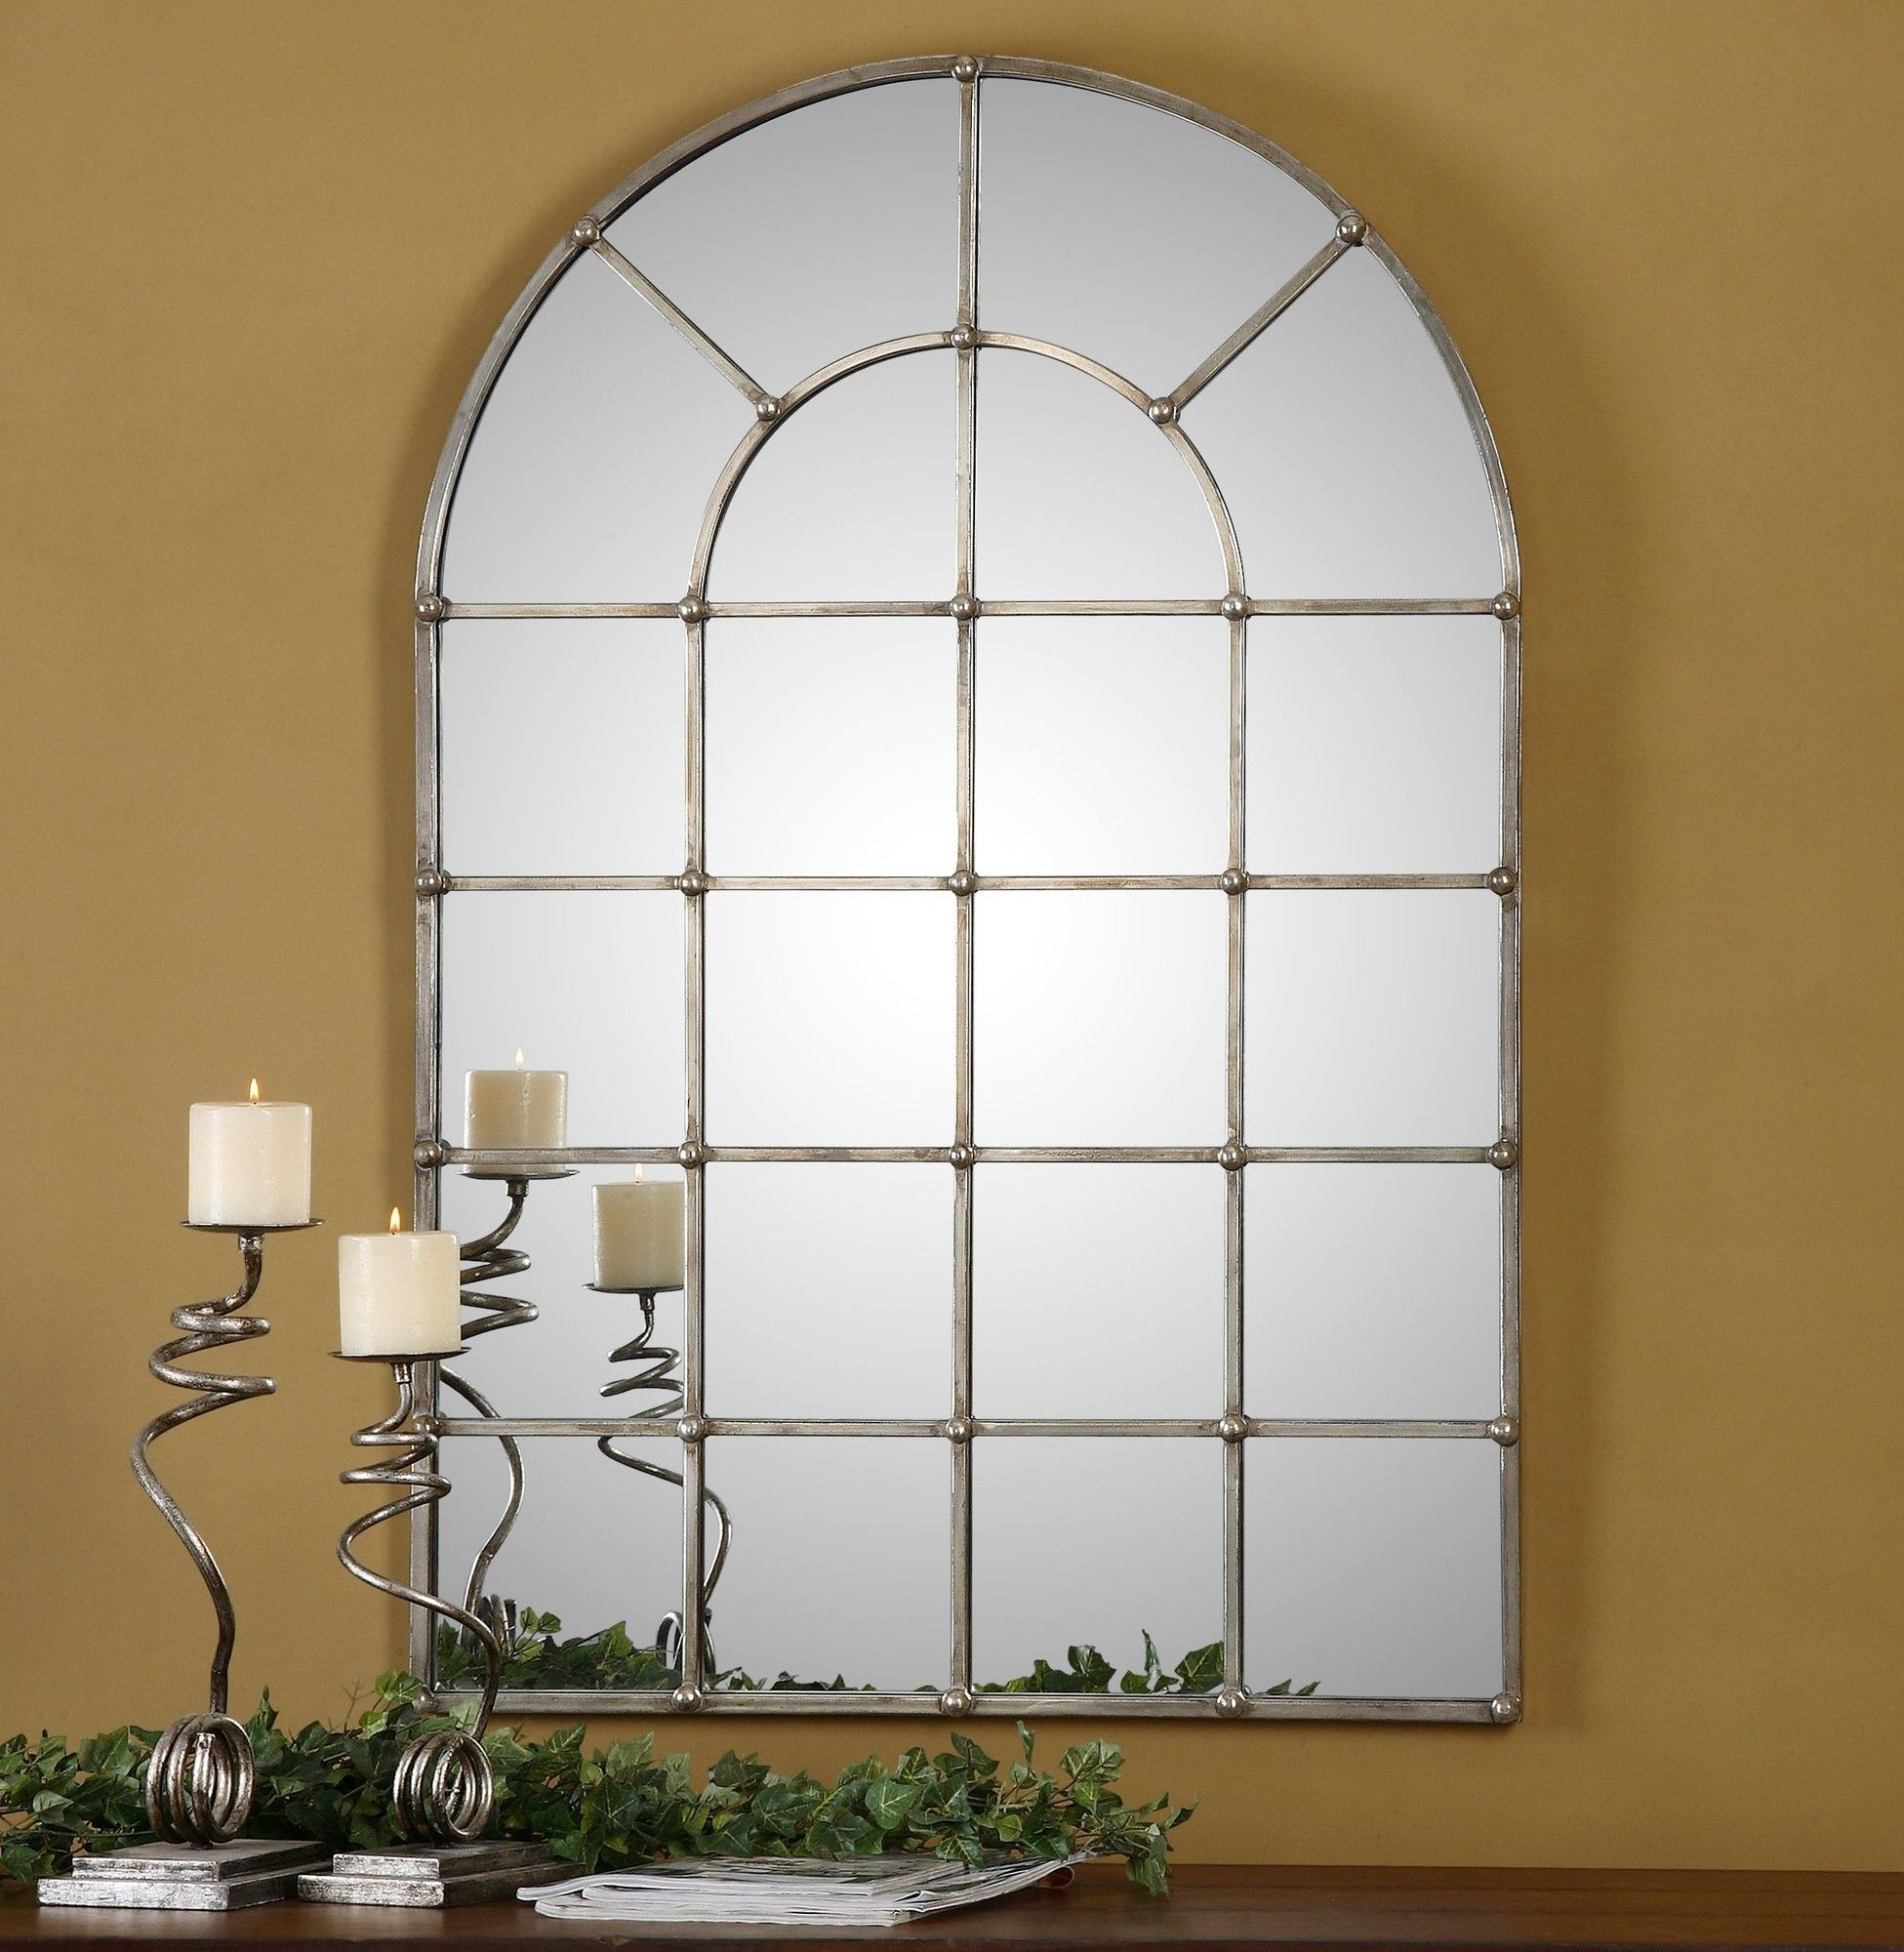 Window mirror decor  joanne wall mirror  products  pinterest  products